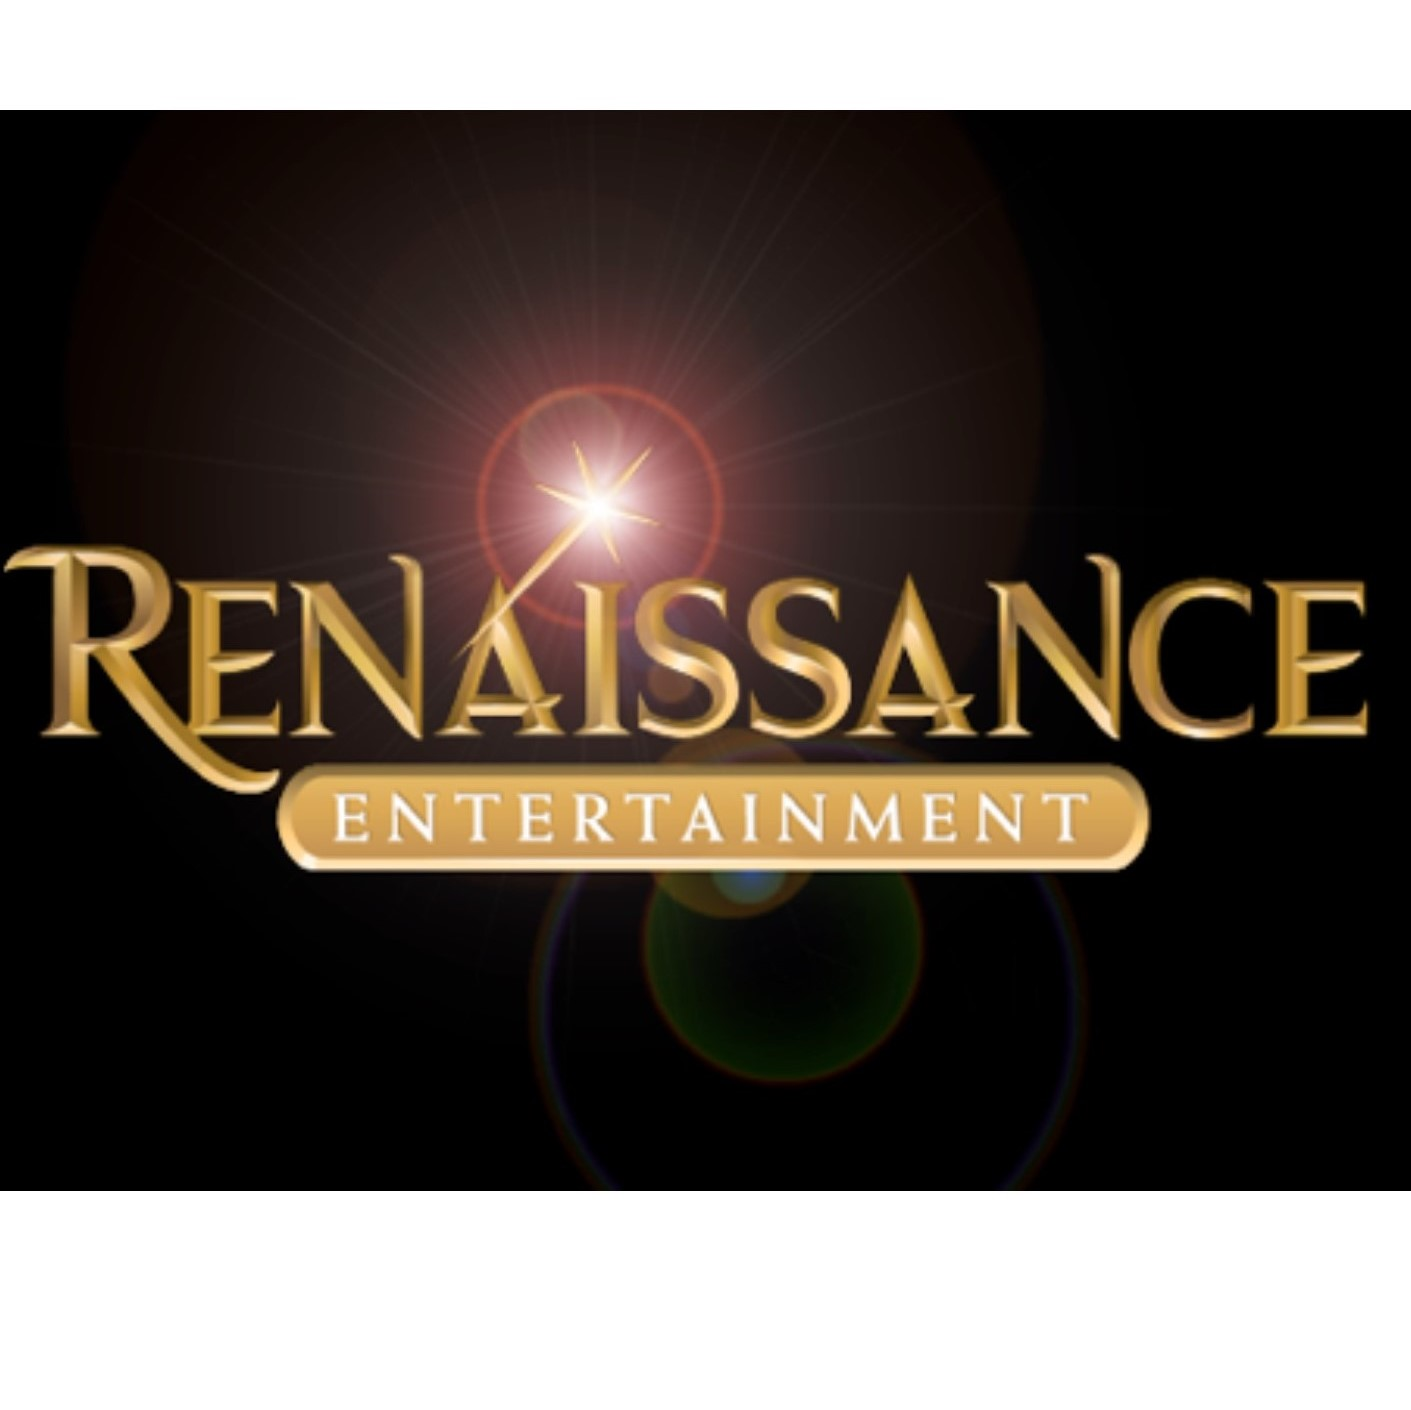 Renaissance Entertainment